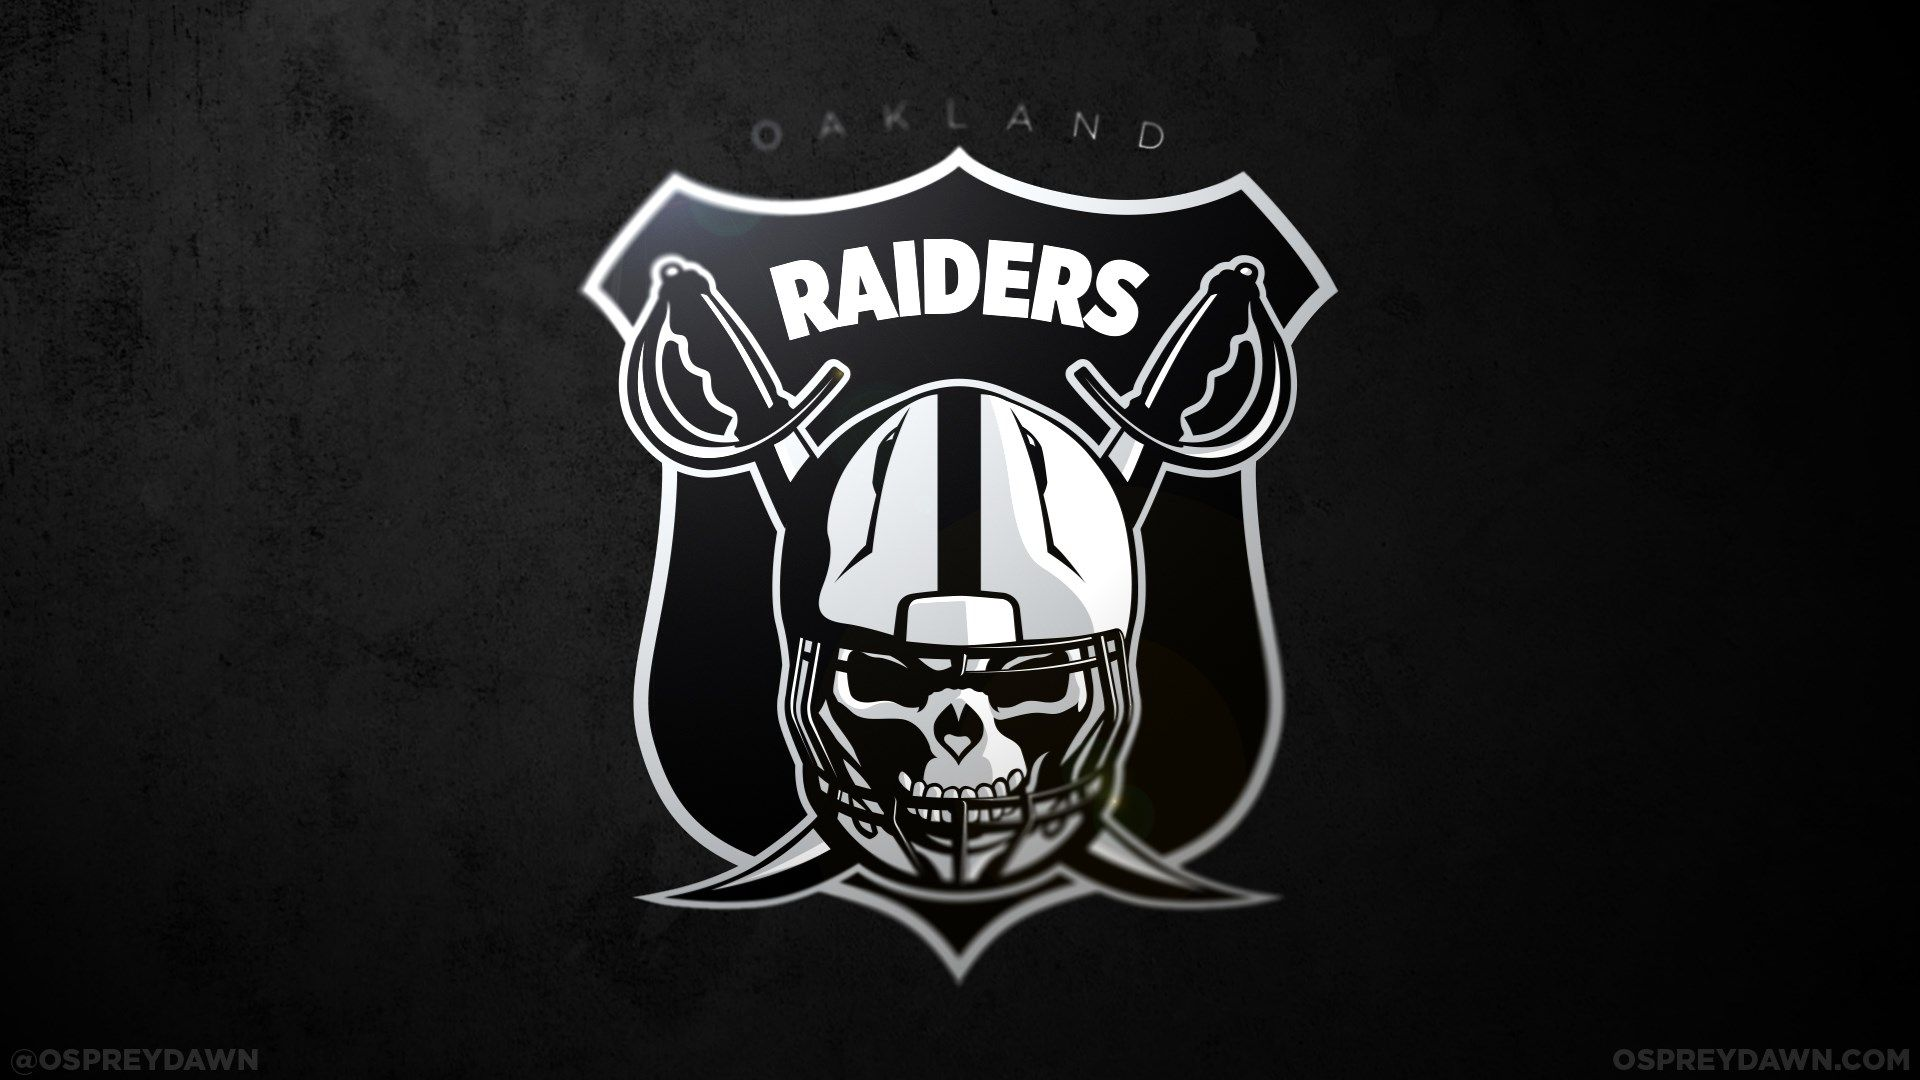 pink raiders wallpaper for iphone Oakland raiders logo